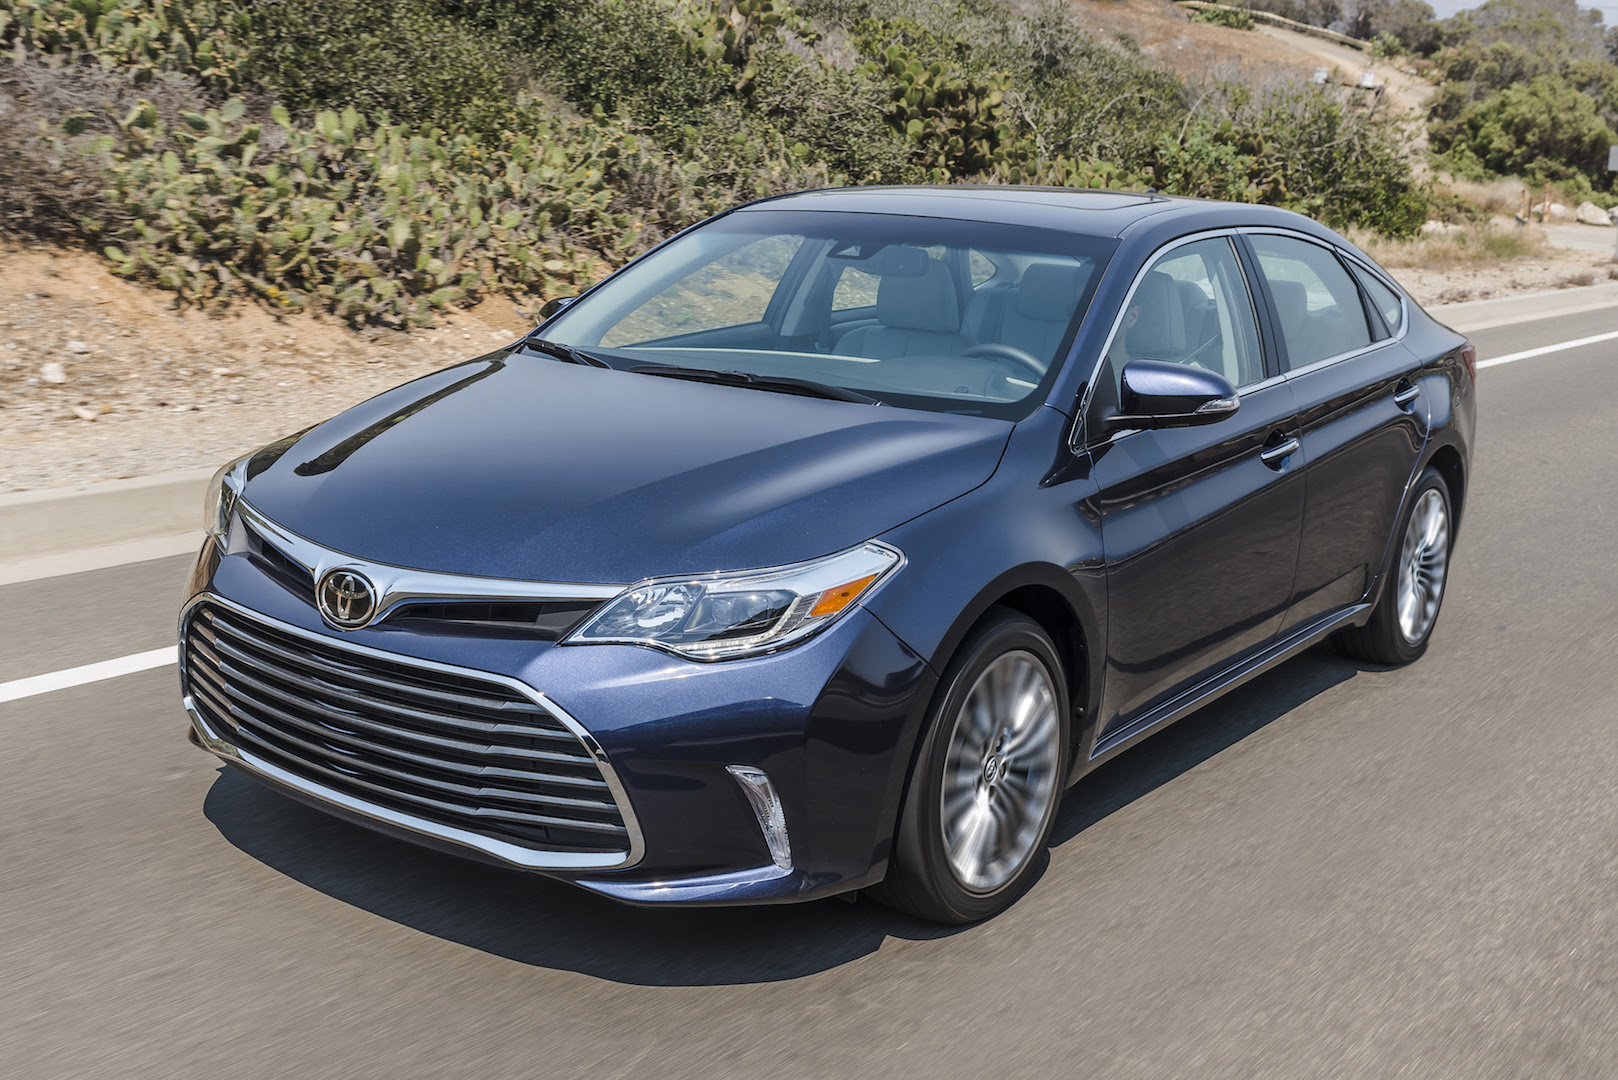 2017 Toyota Avalon Review, Ratings, Specs, Prices, and ...